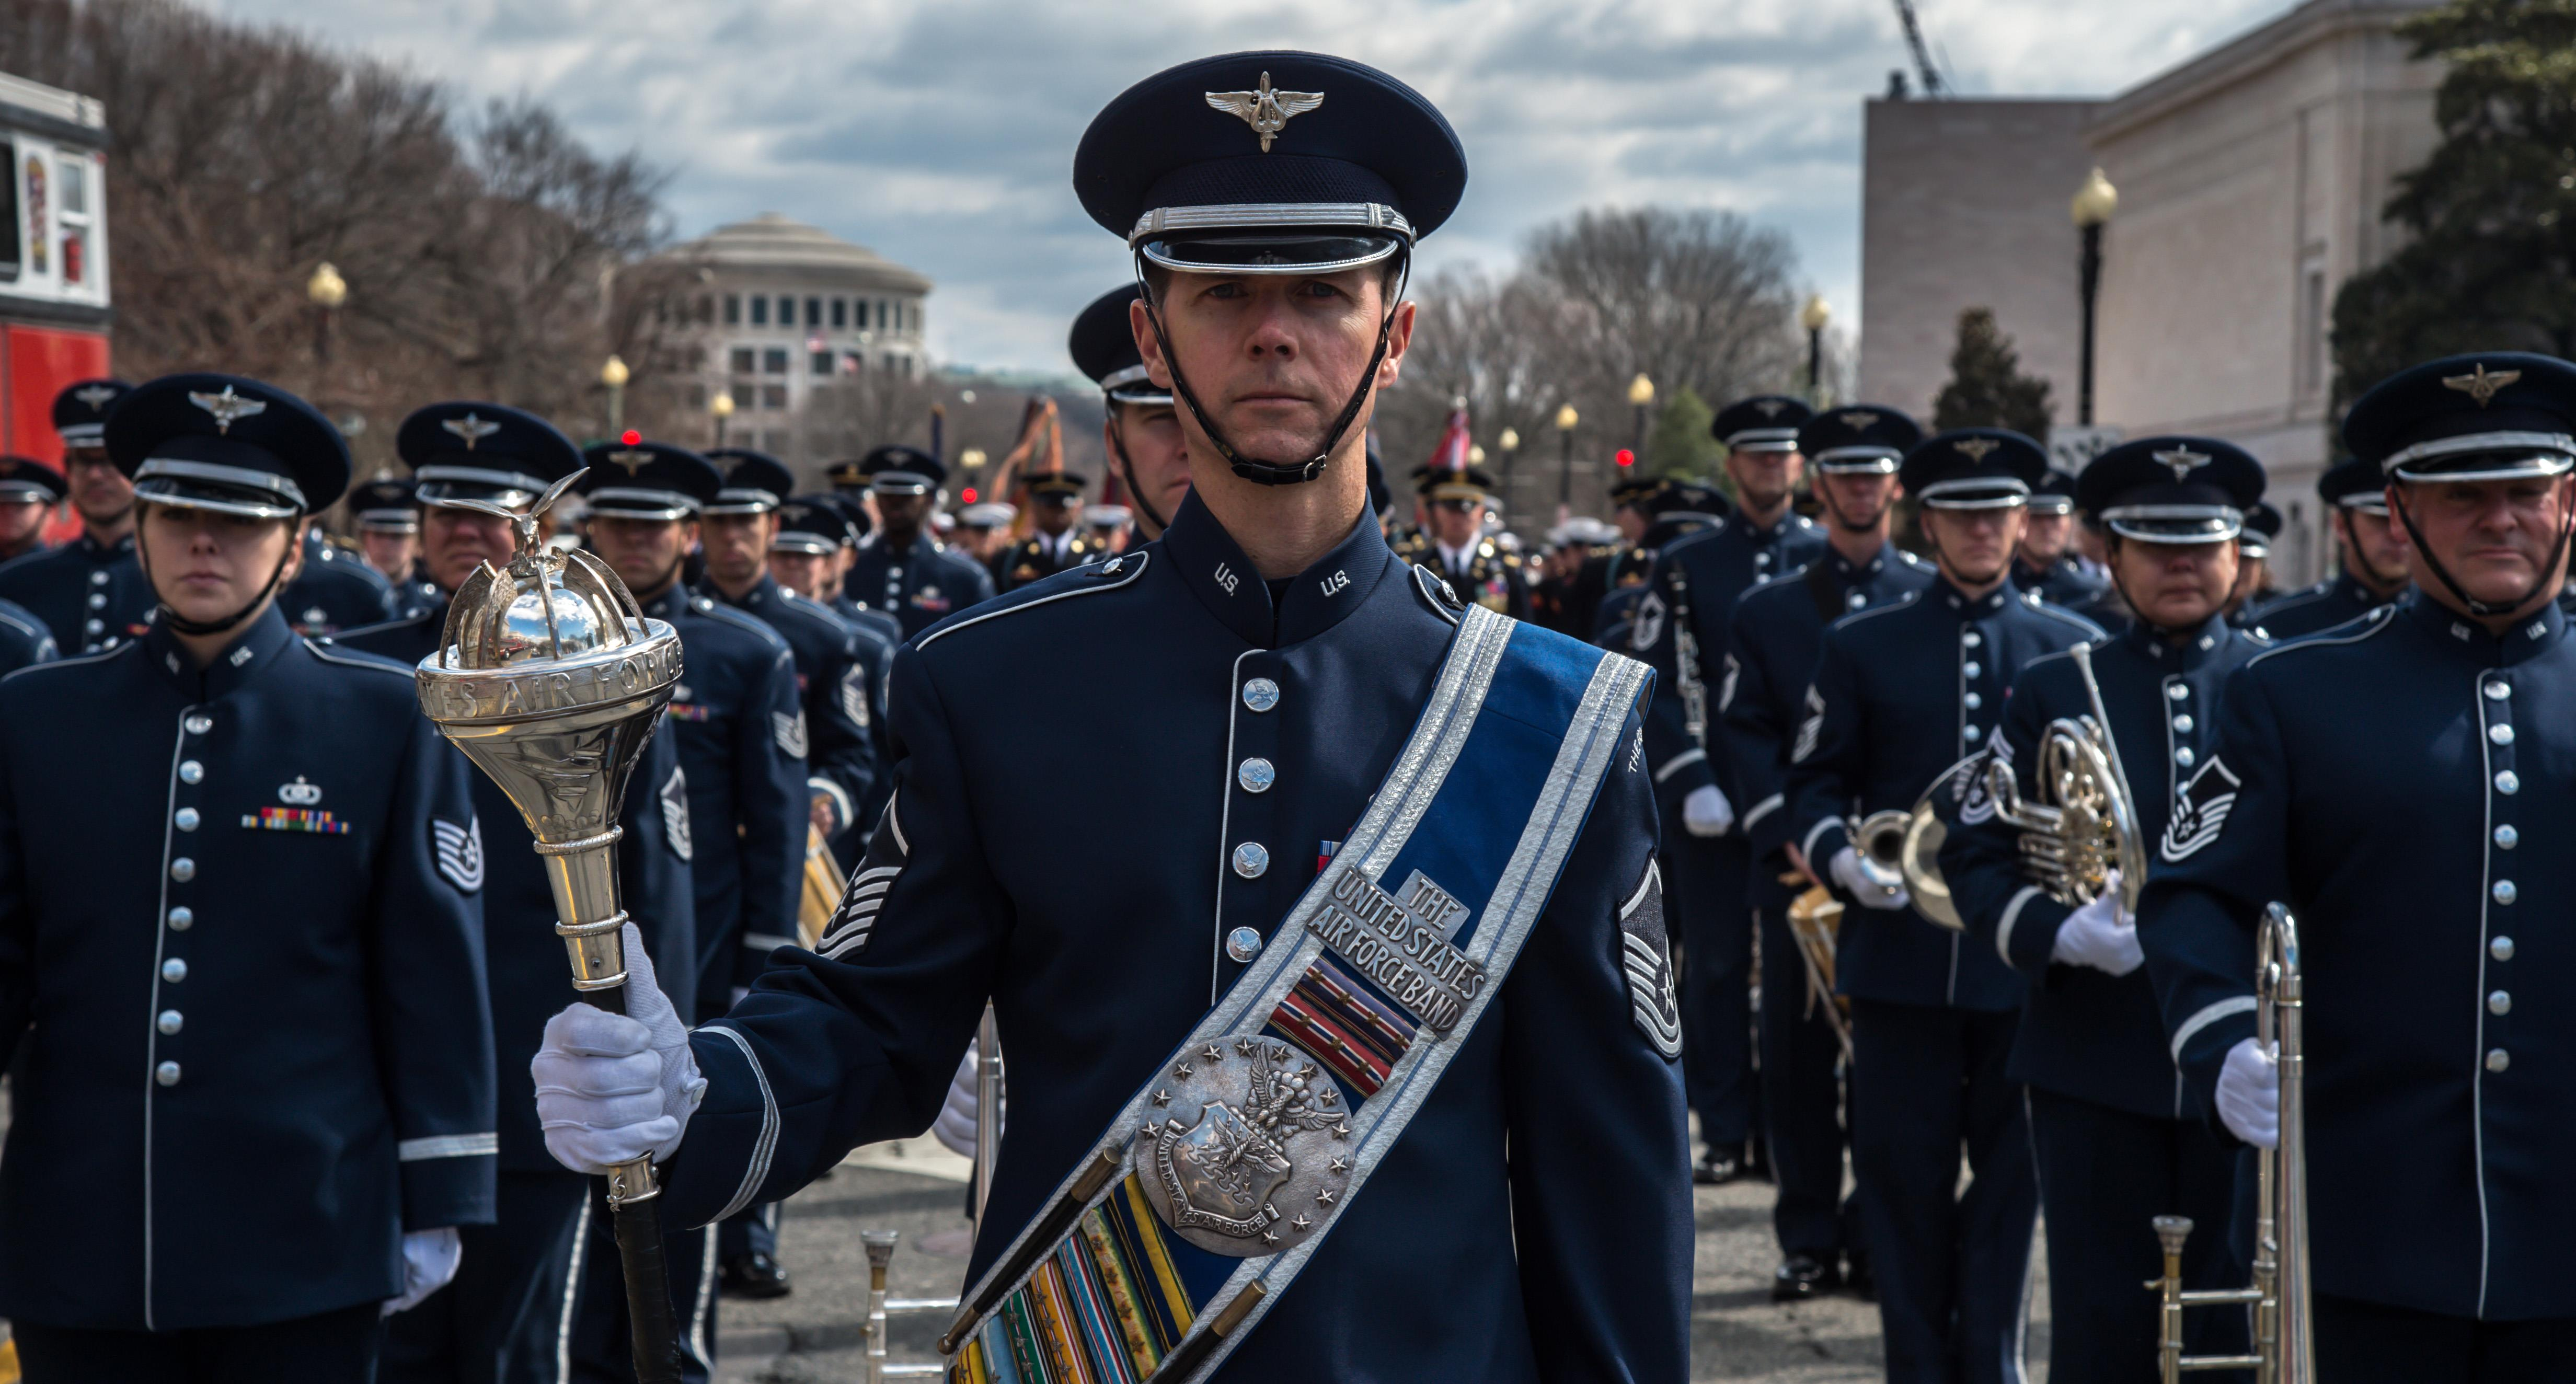 United States Air Force Band - Wikipedia